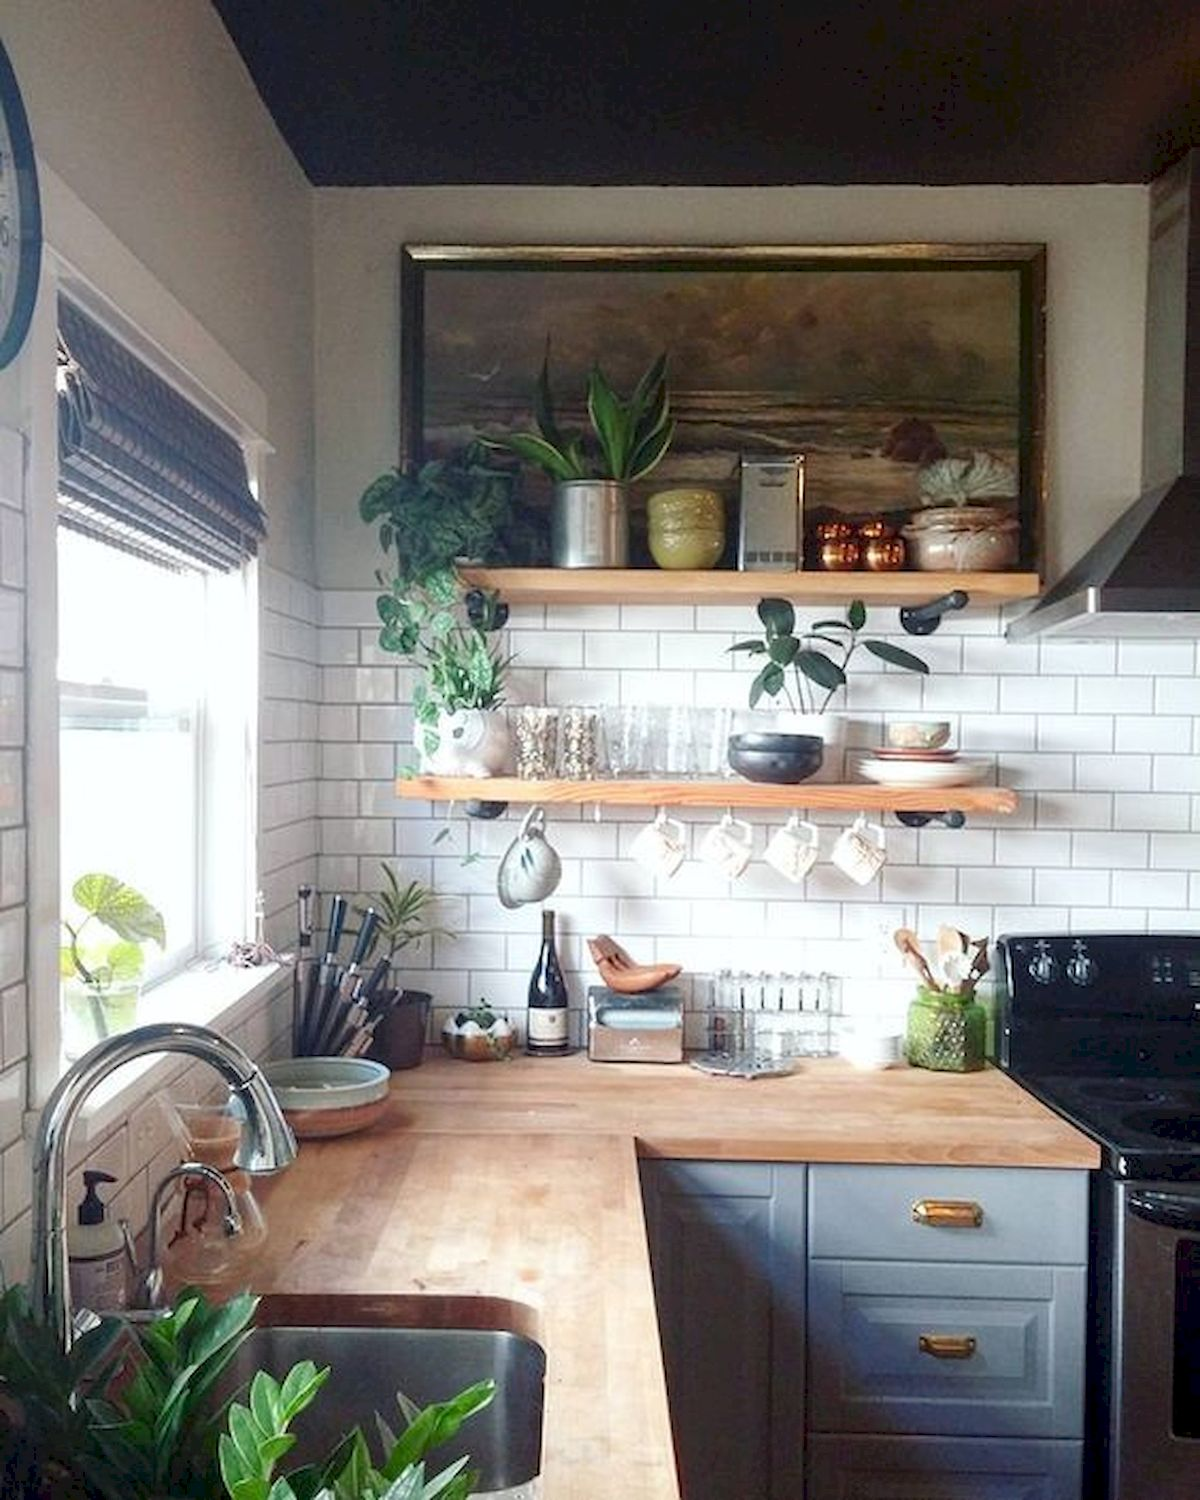 60 Great Farmhouse Kitchen Countertops Design Ideas And ... on Farmhouse Counter Tops  id=62714